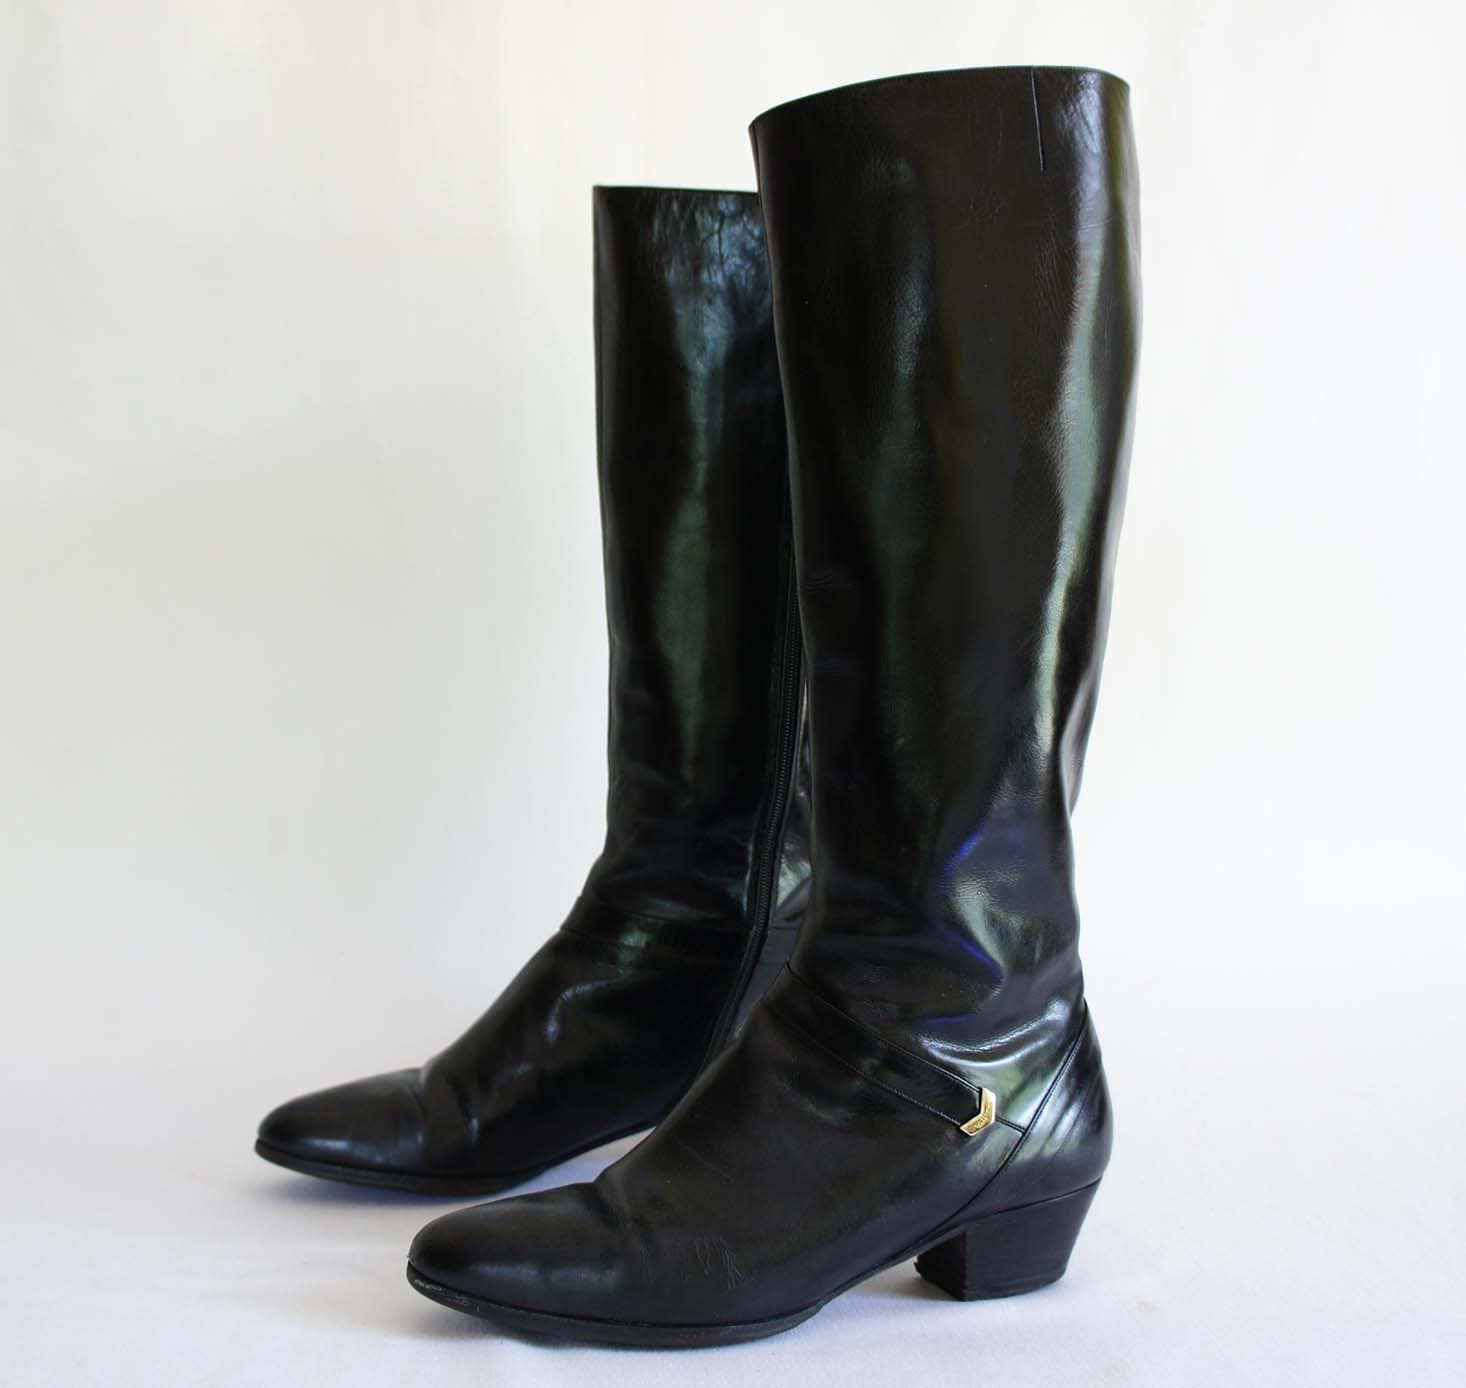 vintage ferragamo boots in a black leather fashion boot